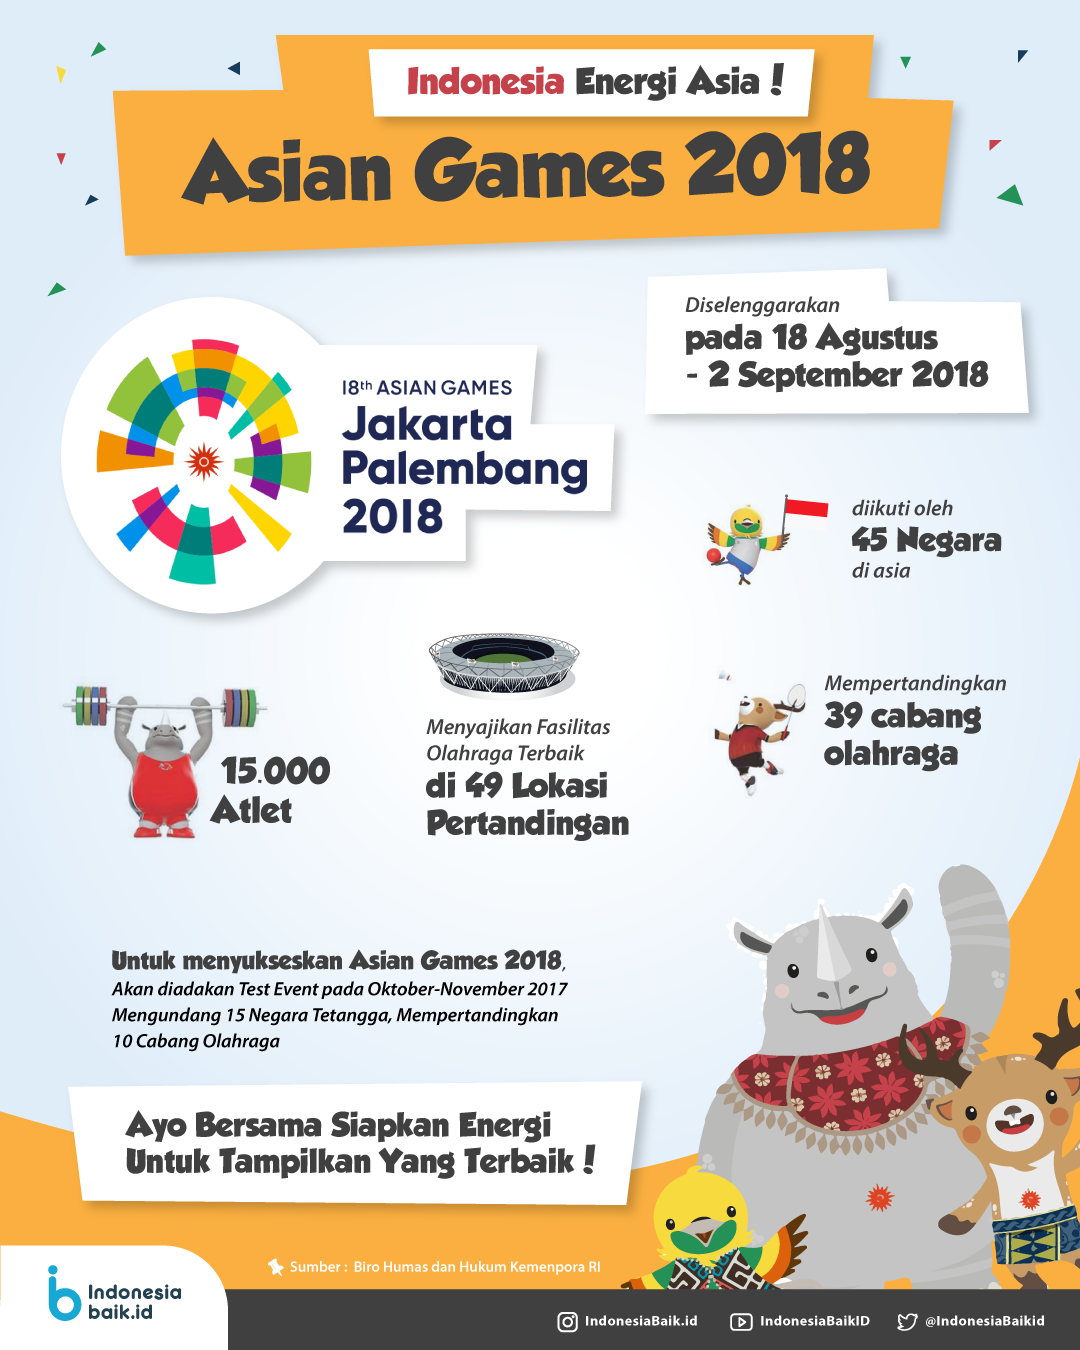 Indonesia Energi Asia! Asian Games 2018